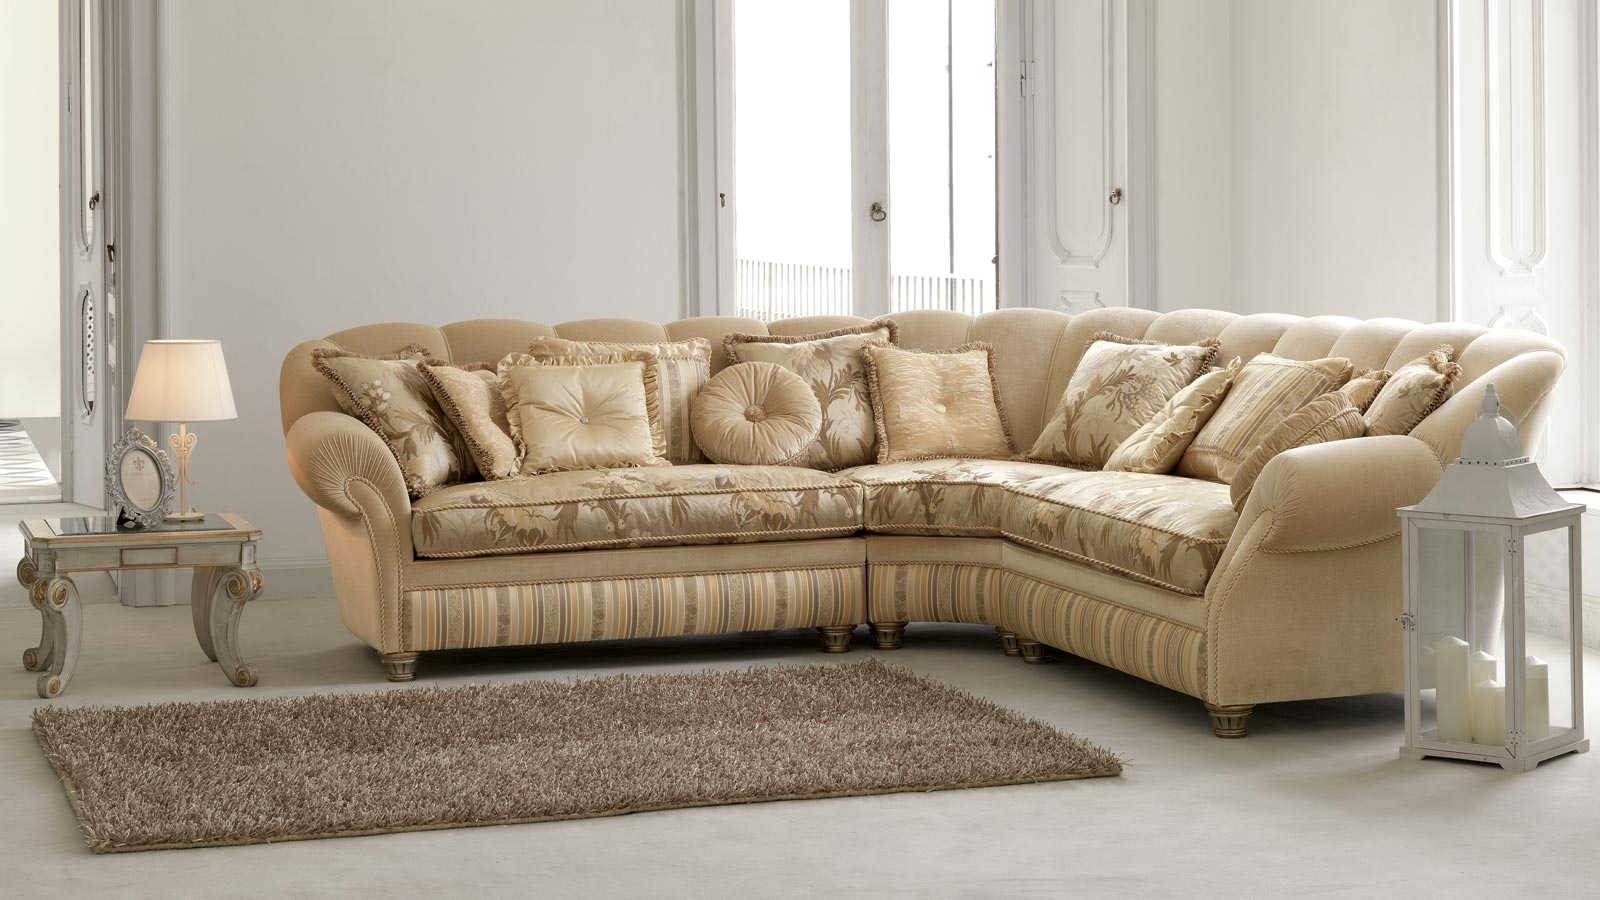 New Fancy Sofas 32 Office Sofa Ideas With Fancy Sofas Within Most Recent Fancy Sofas (View 7 of 15)